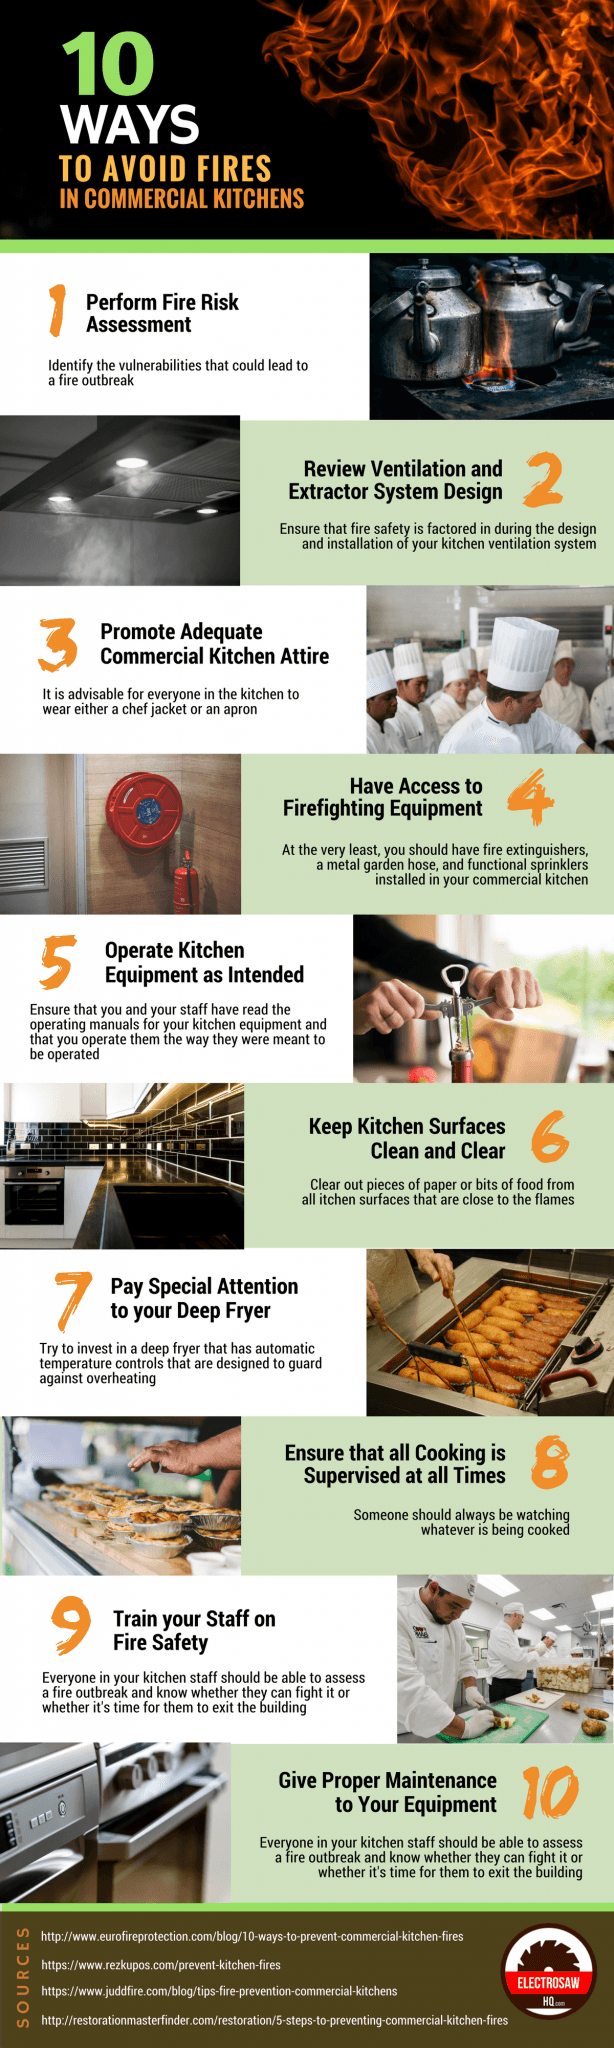 Tips-Avoid-Kitchen-Fires-infographic-plaza